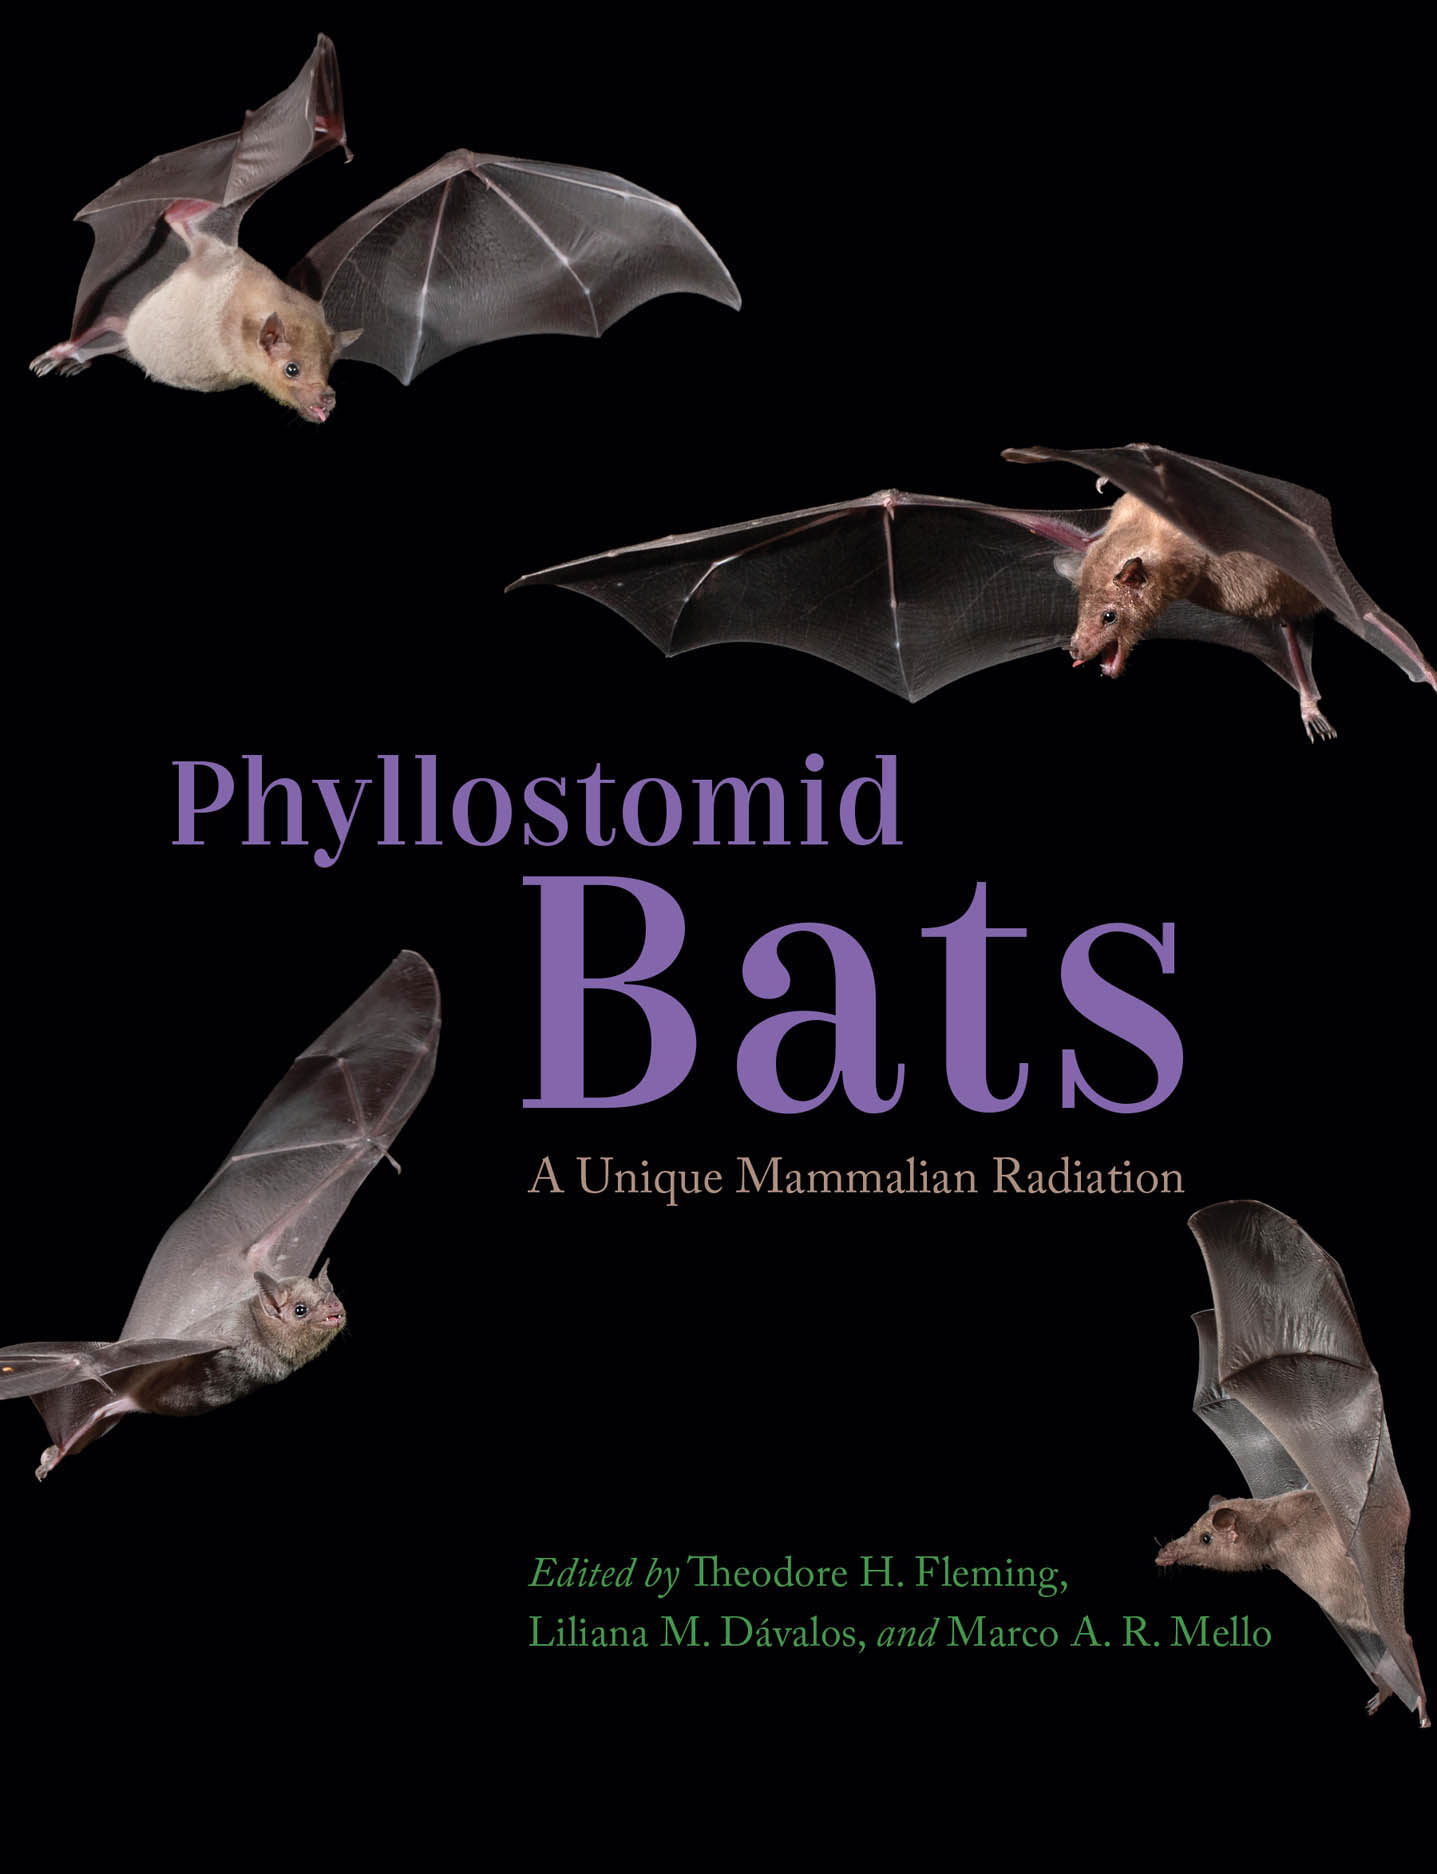 Phyllostomid Bats: A Unique Mammalian Radiation